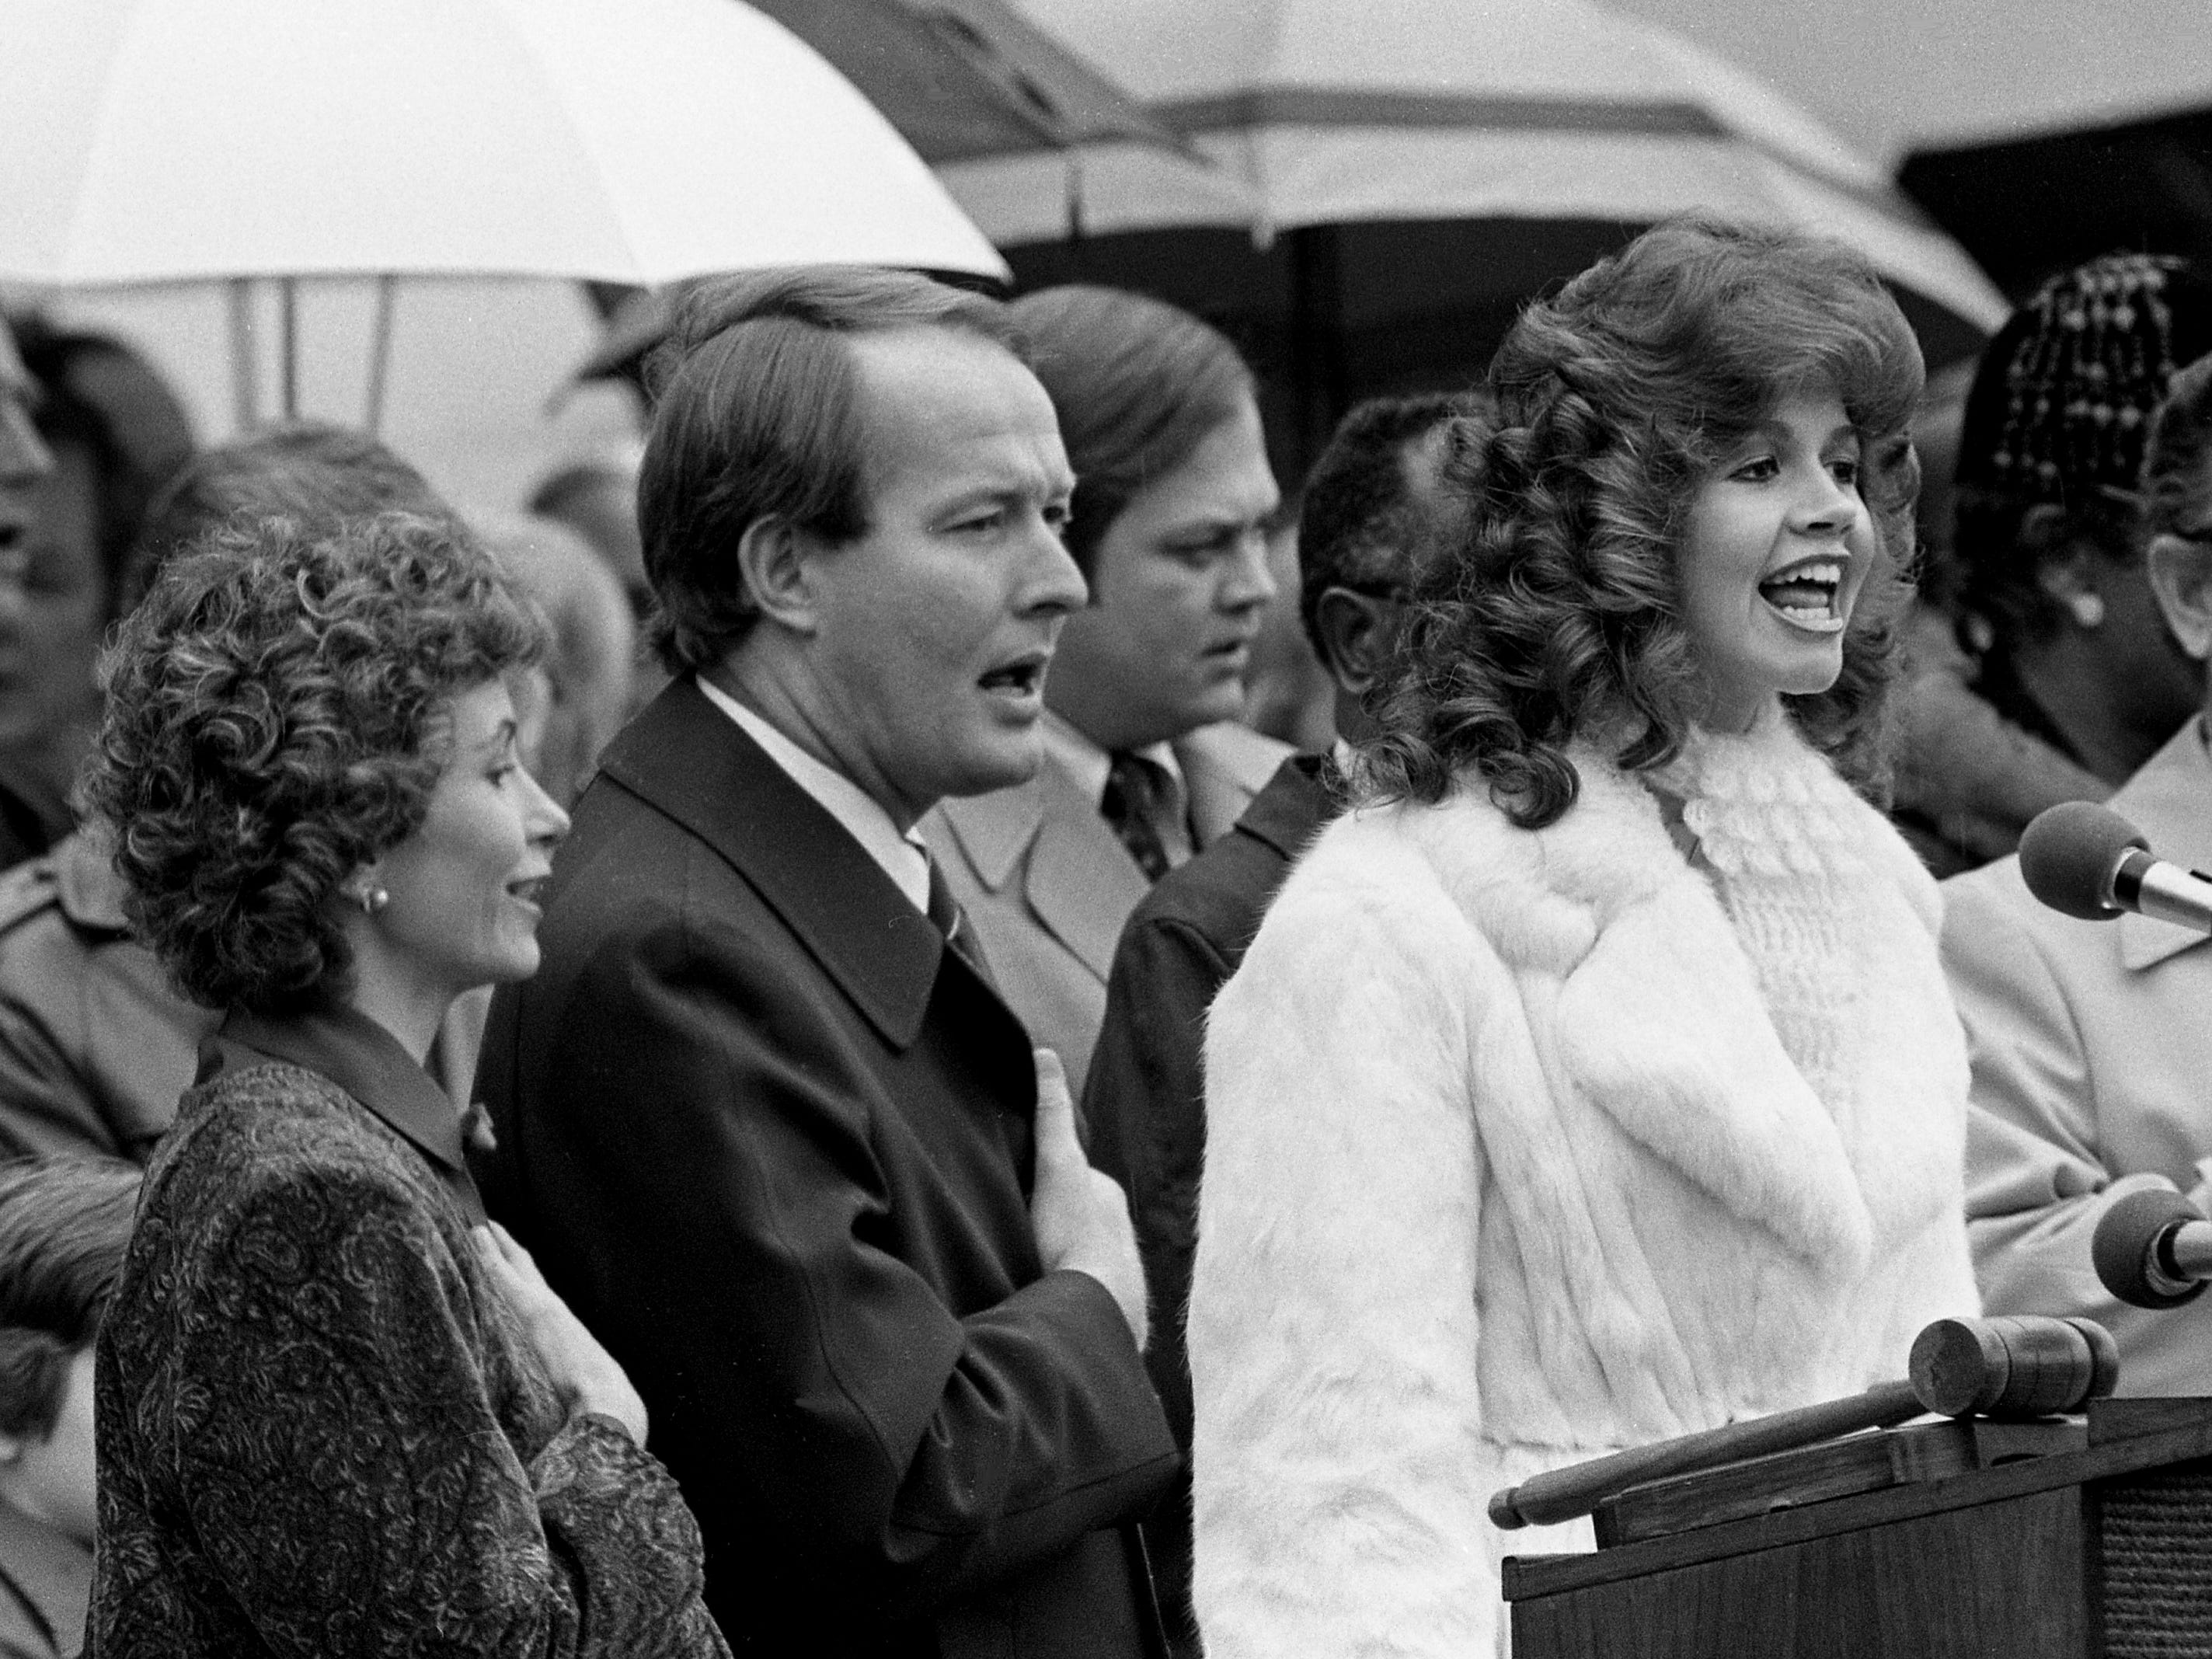 Lynn Golden, right, a student of Lee College in Cleveland, Tenn., sings the national anthem with Honey and Gov. Lamar Alexander joining in during the inauguration ceremonies for Alexander at the Legislative Plaza on Jan. 20, 1979.